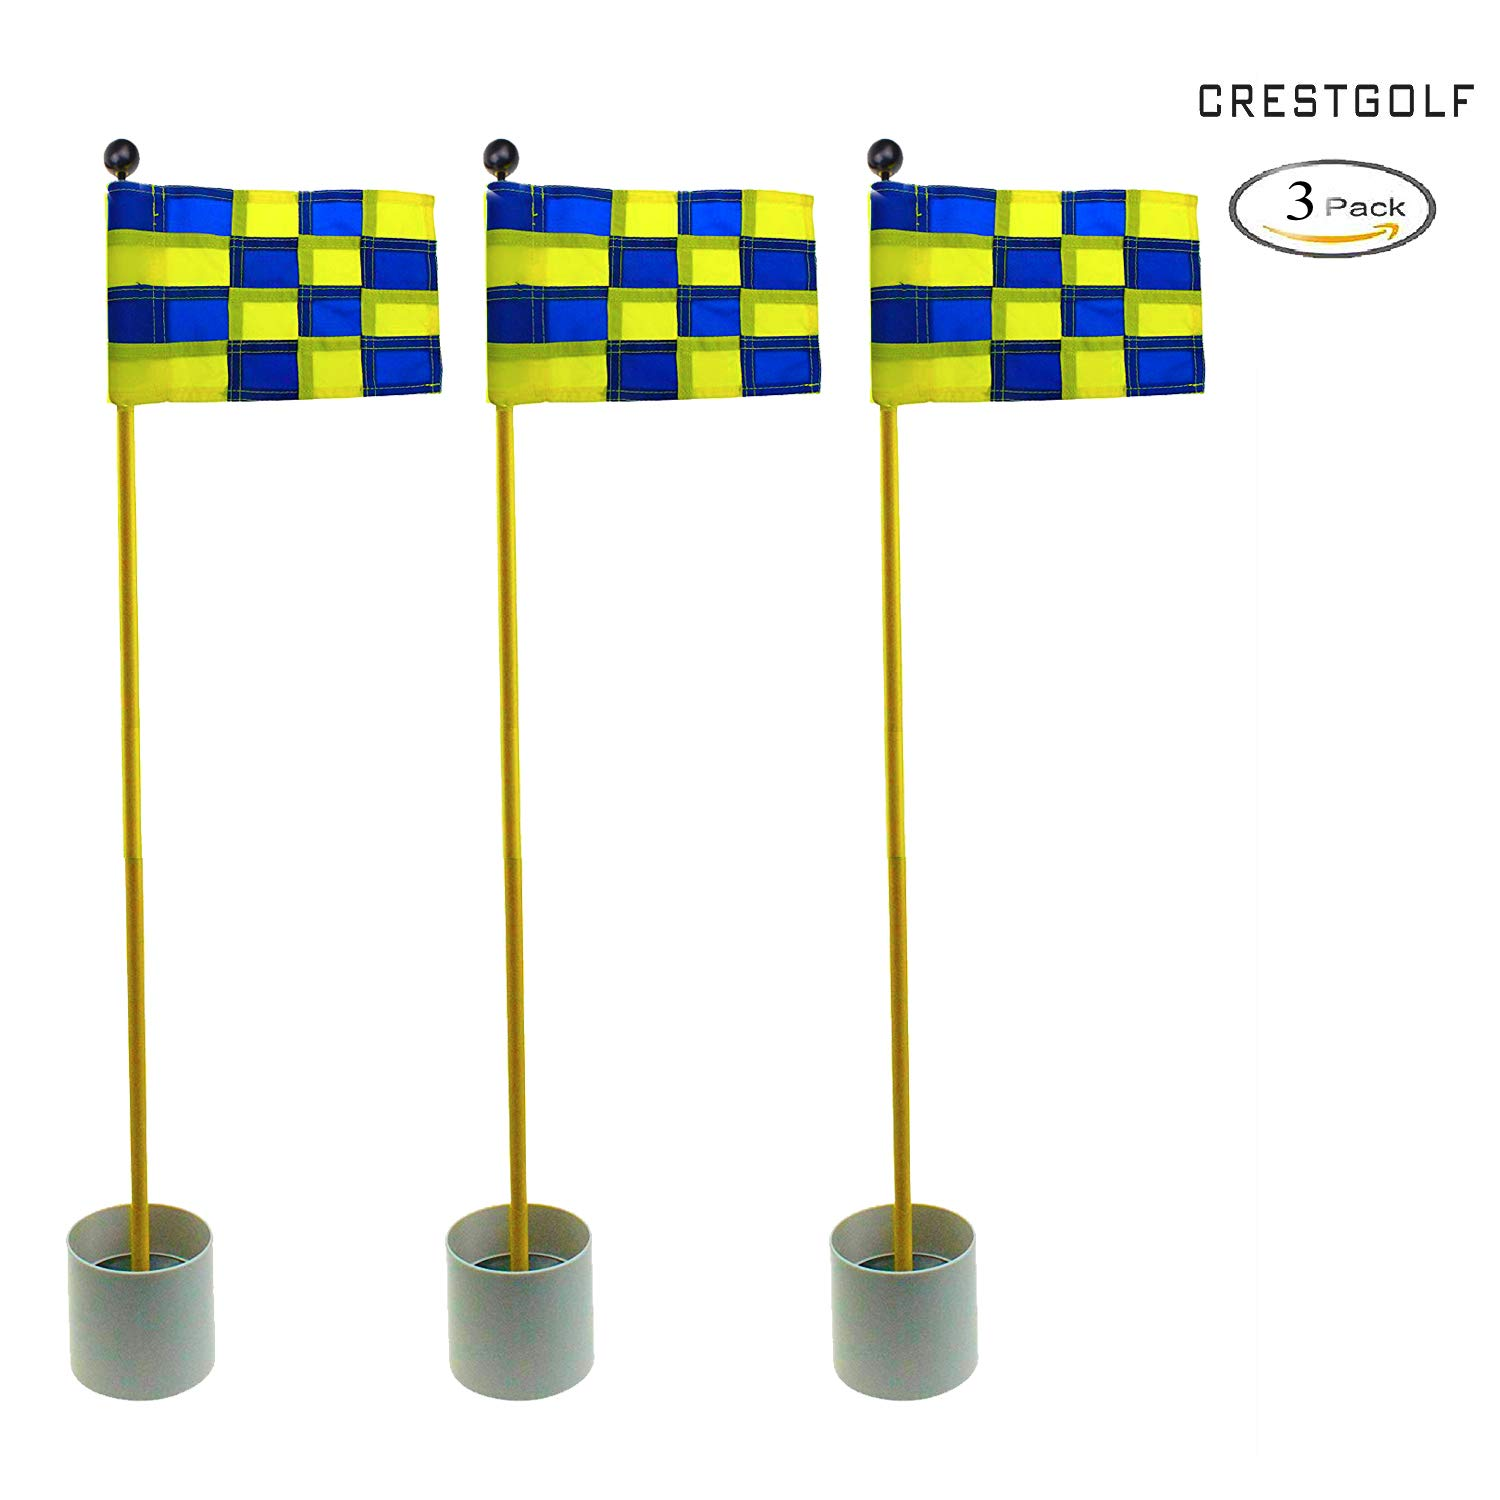 CRESTGOLF 3Sets Backyard Practice Golf Hole Pole Cup Flag Stick, 3 Section,Golf Putting Green Flagstick (blue-yellow plaid)